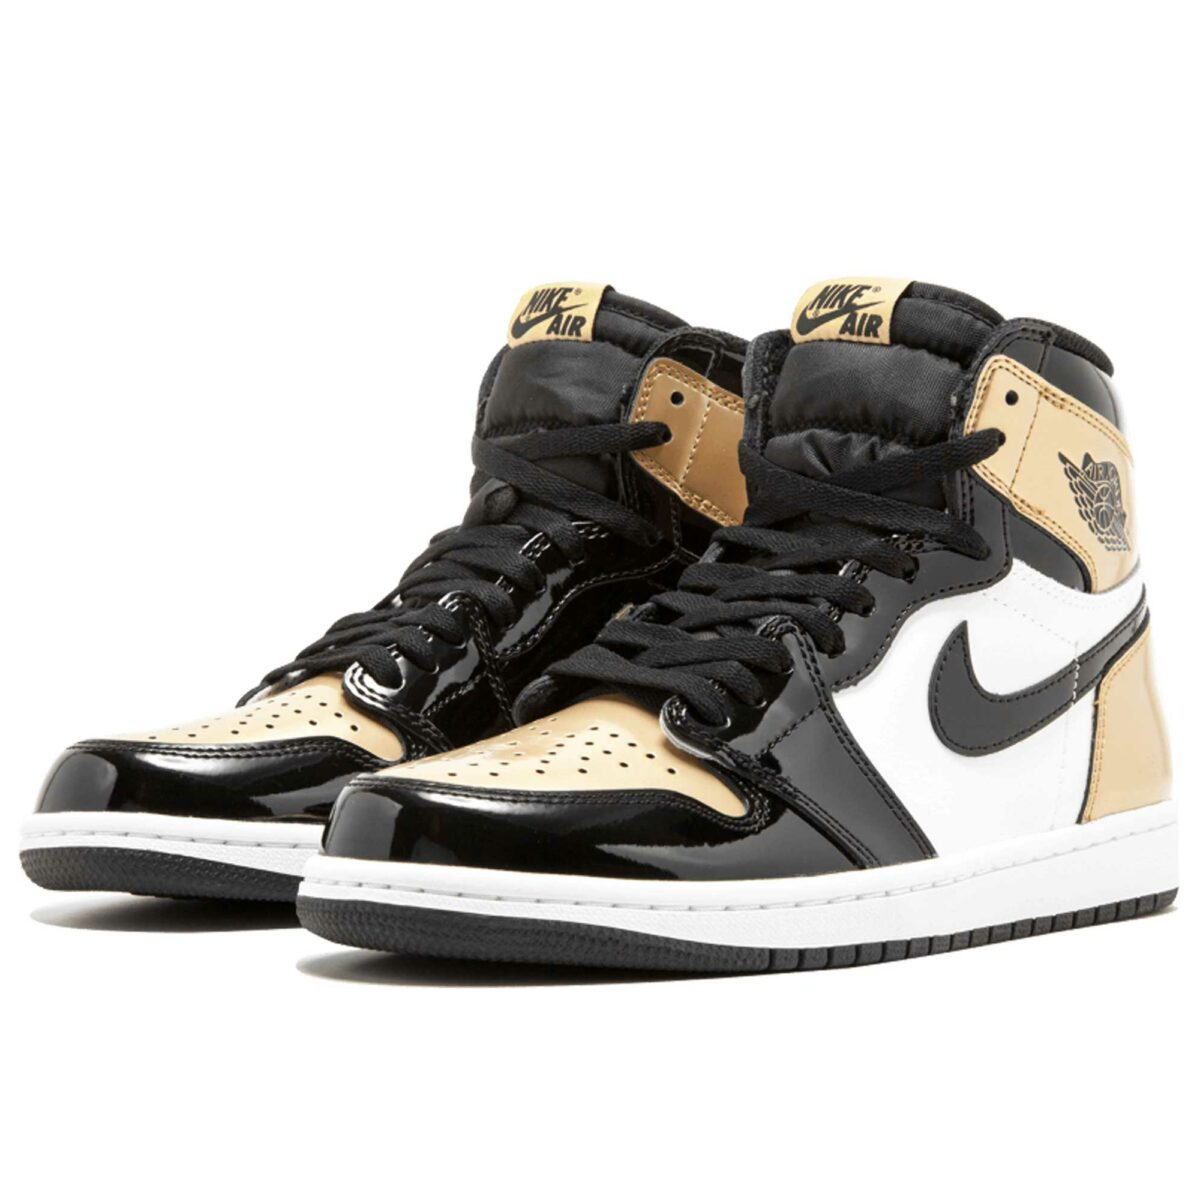 air Jordan 1 retro high og black gold 861428_007 купить